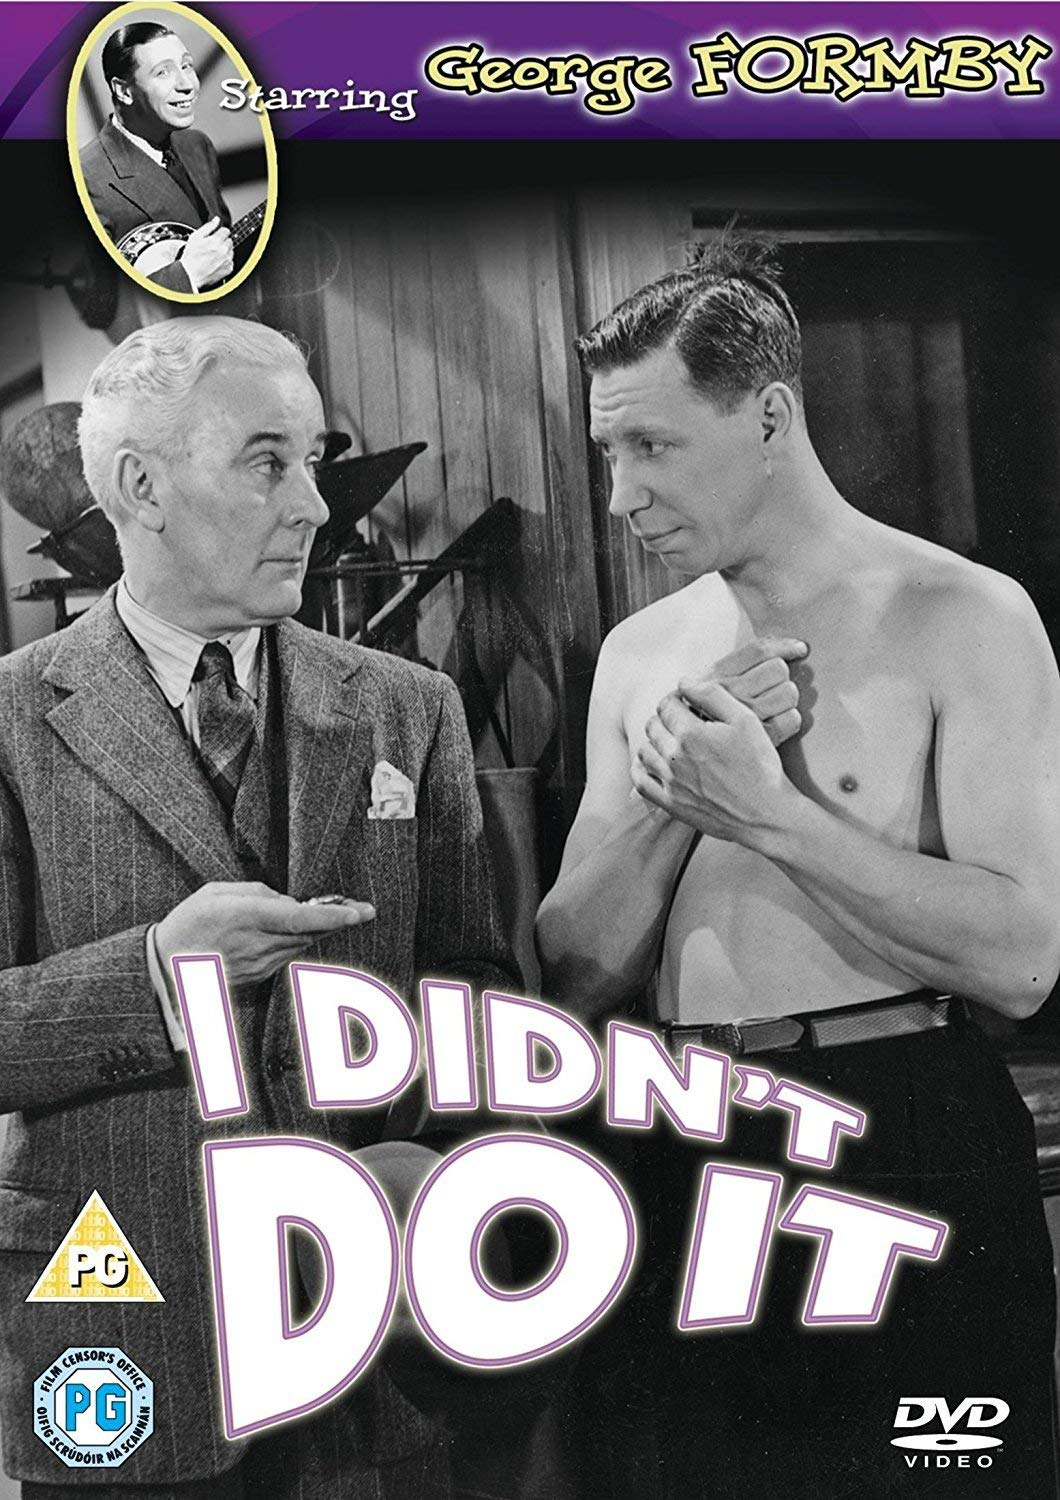 Ian Fleming and George Formby in I Didn't Do It (1945)